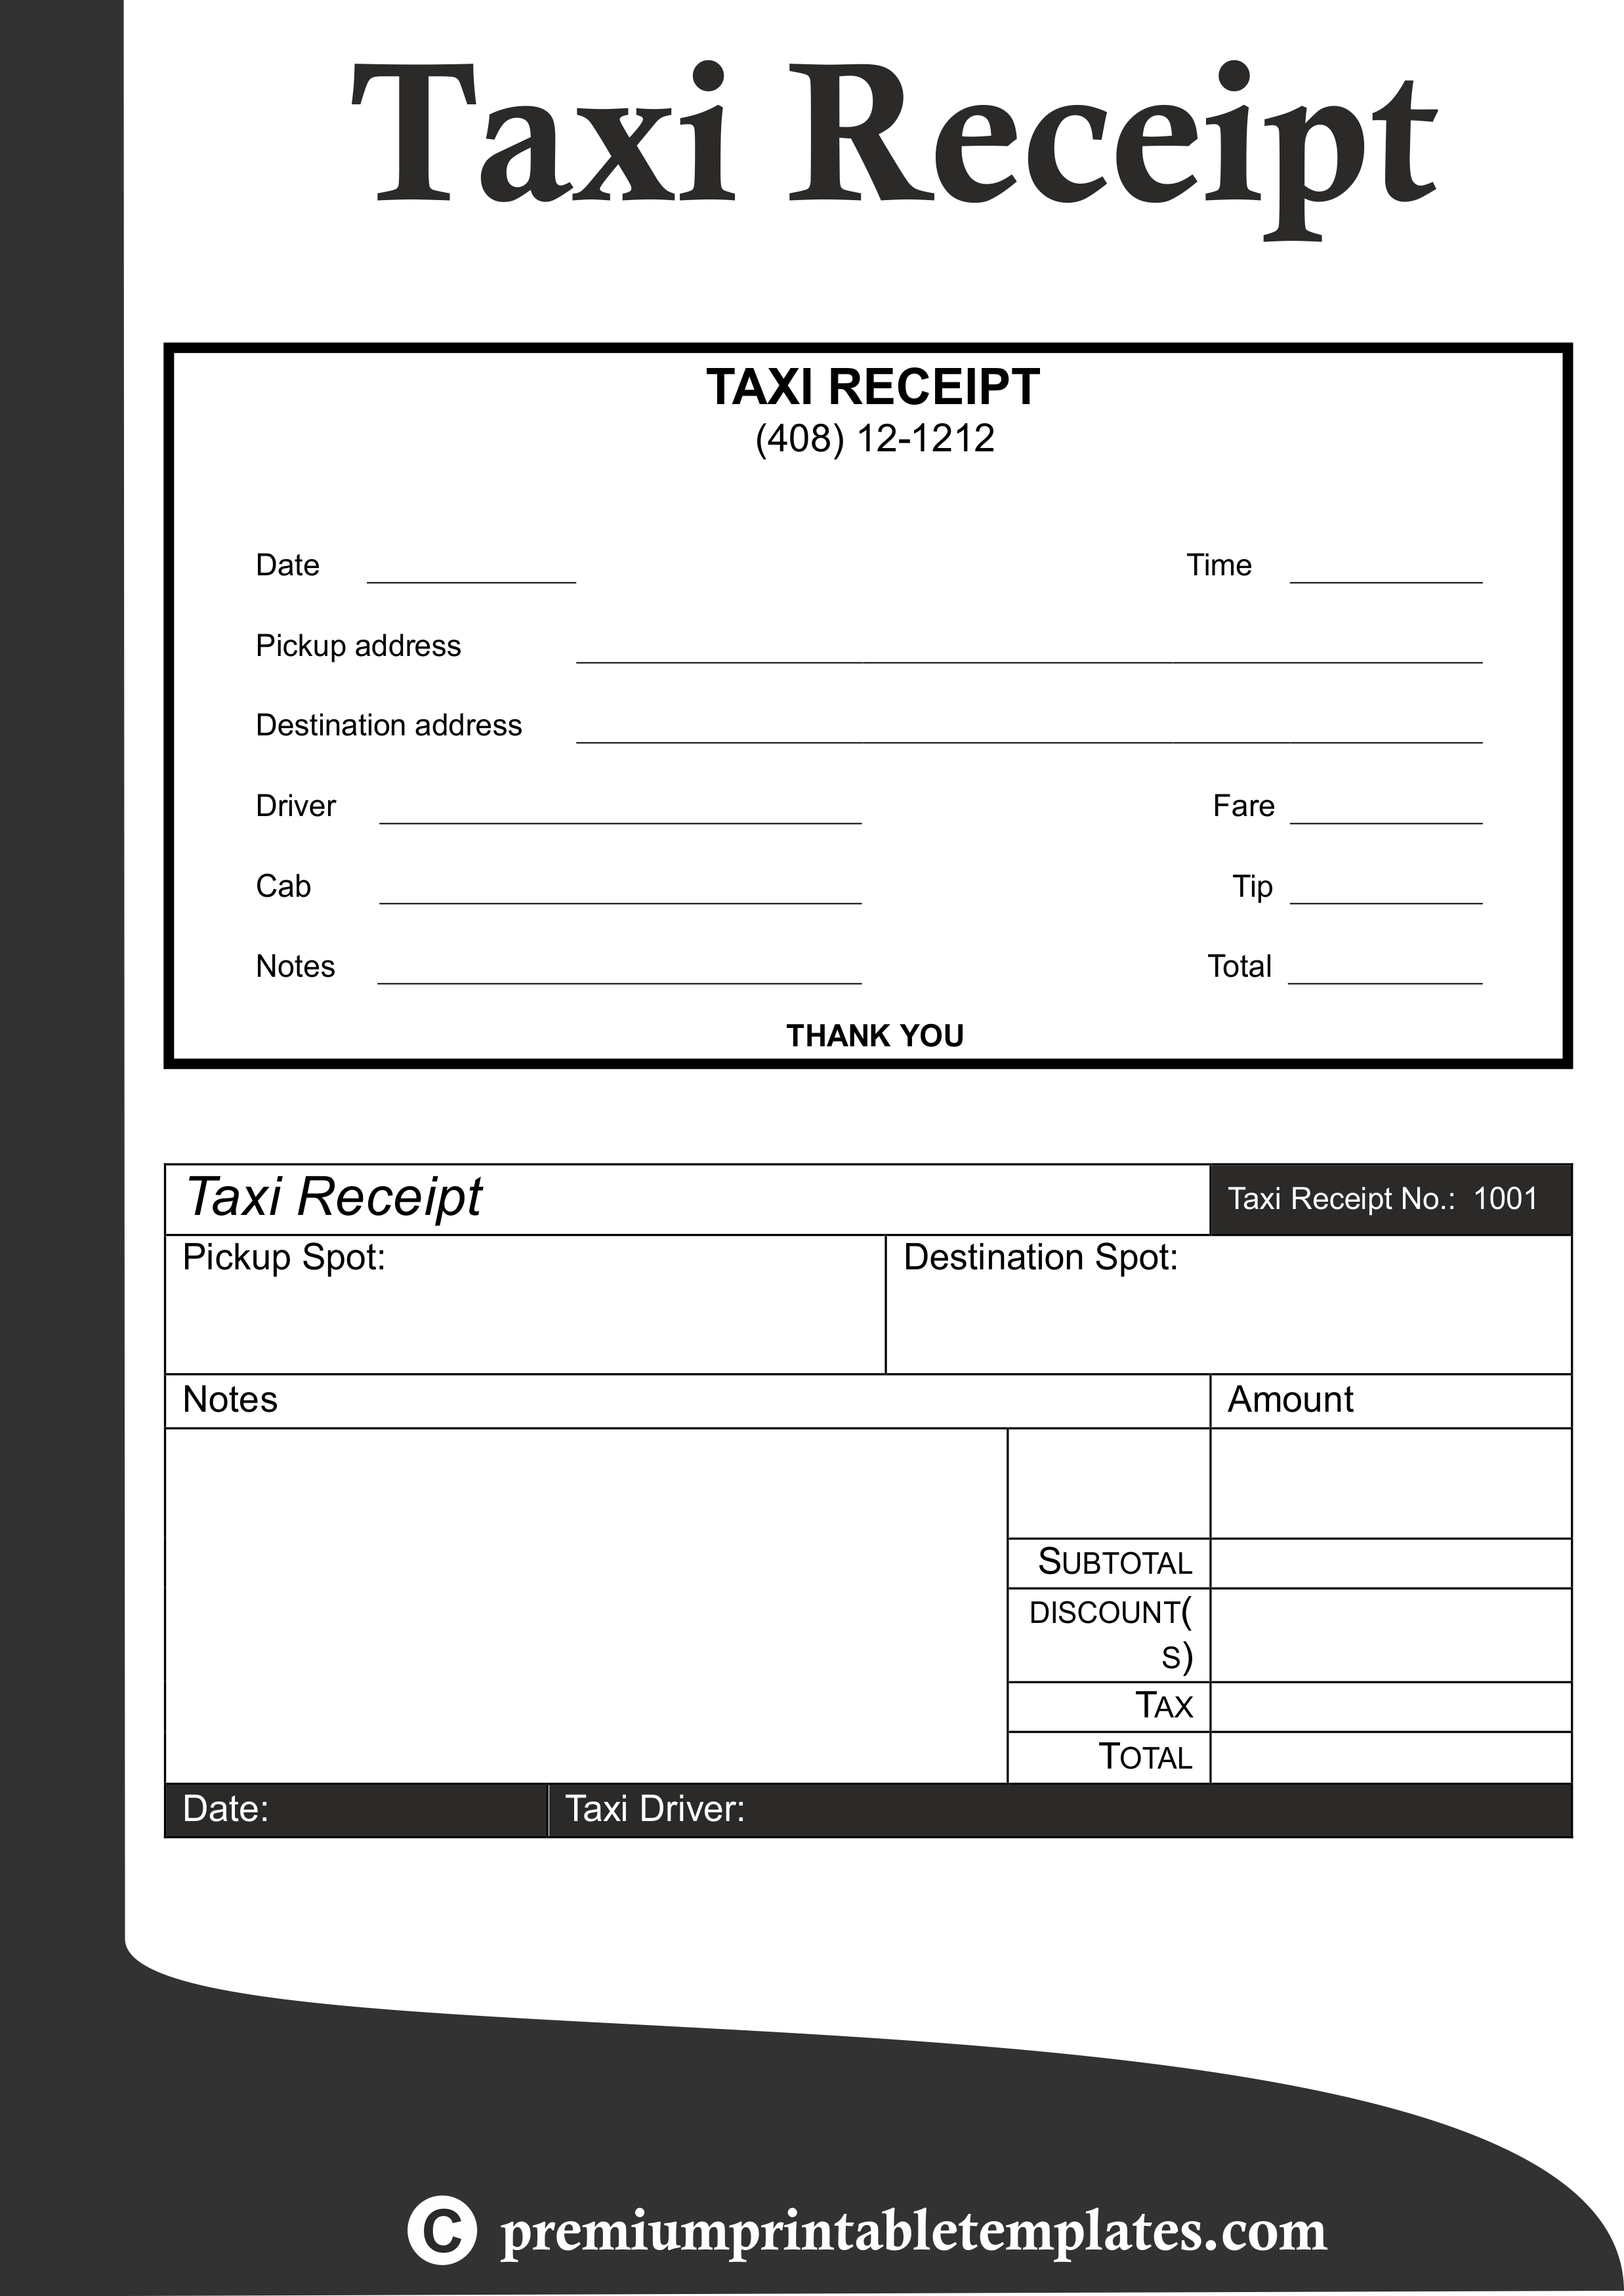 taxi receipt templates singapore taxi receipt template